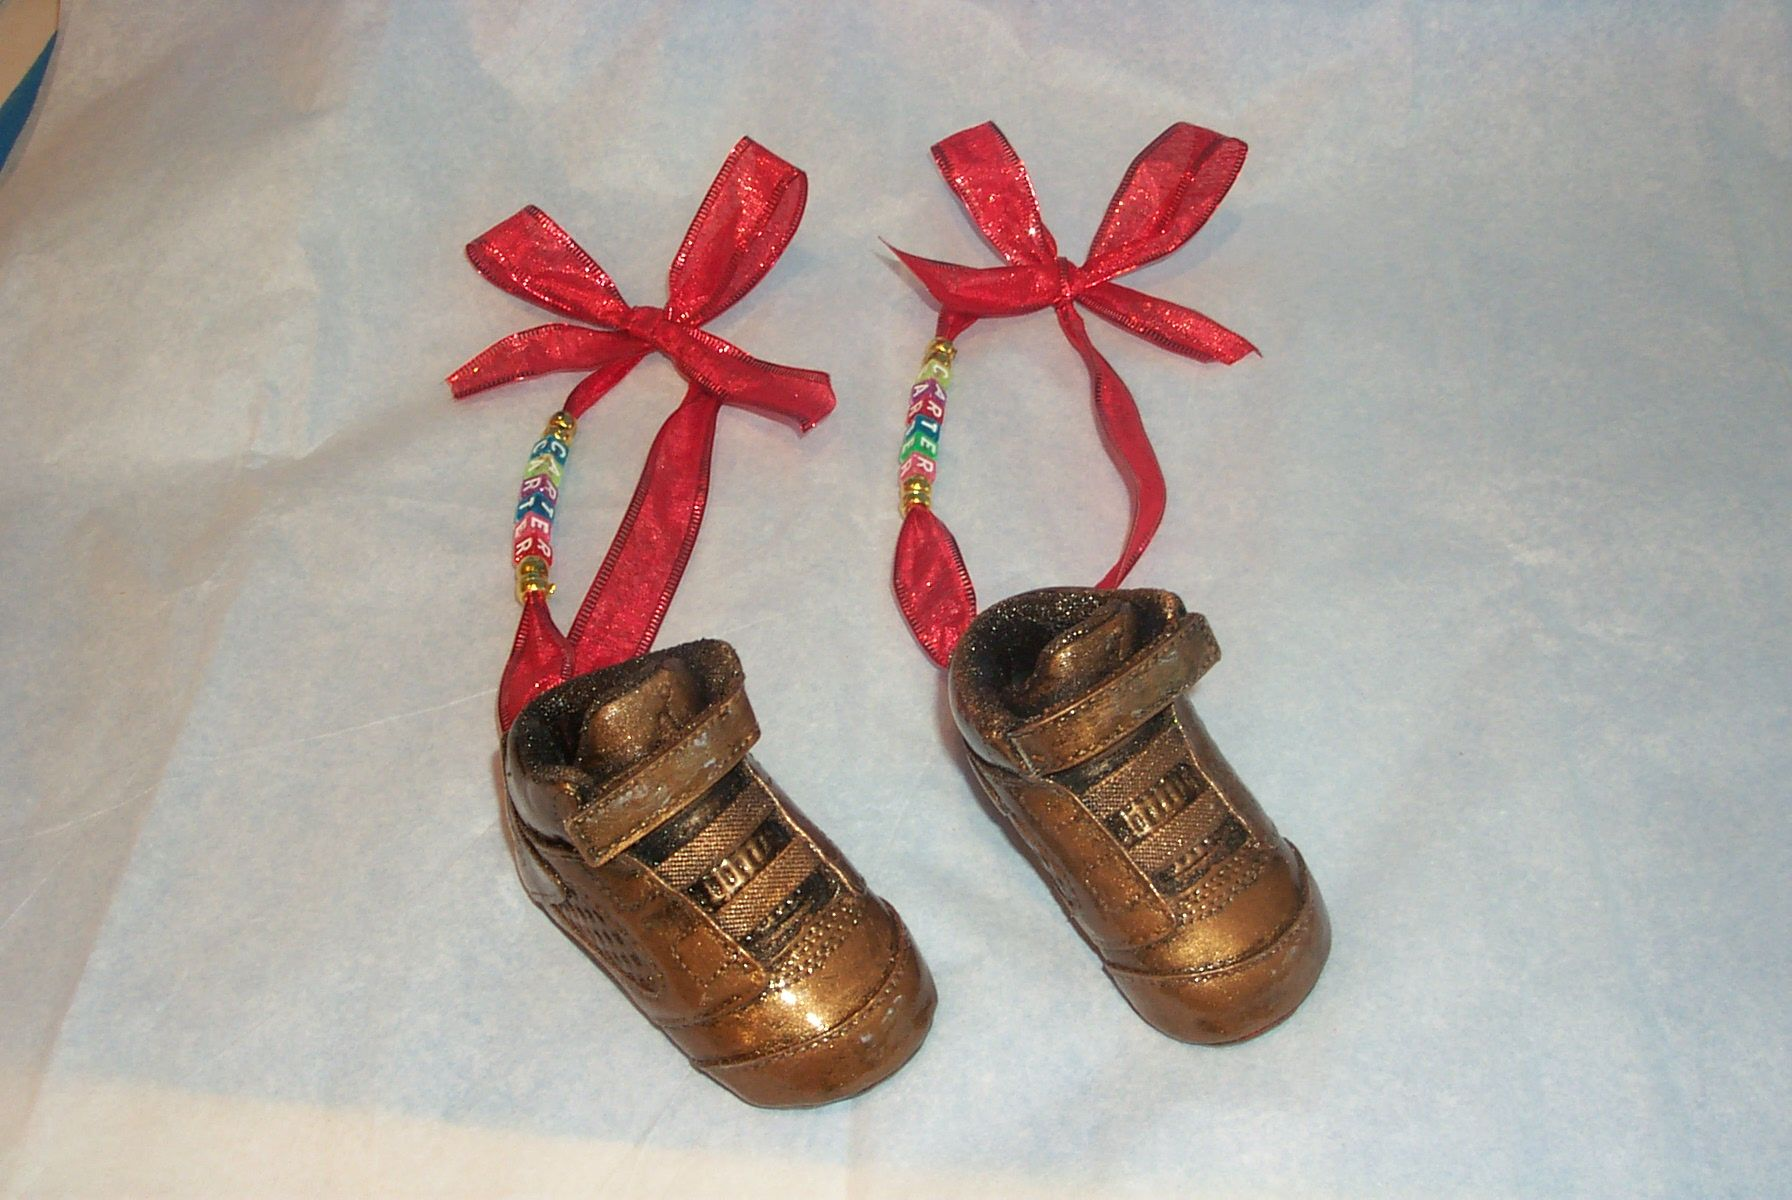 WE BRONZE BABY SHOES Pair of Baby shoes Bronzed as Christmas Tree